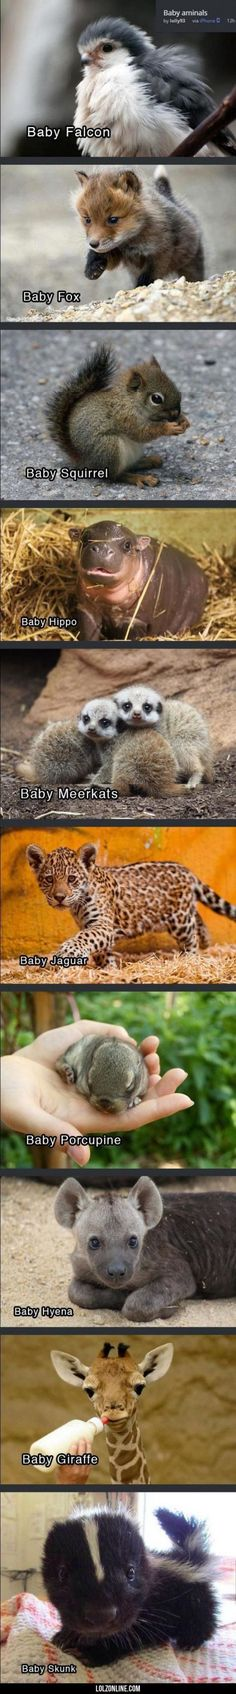 This pic is so cute! I can't believe how adorable baby animals can be! The Animals, Baby Animals Pictures, Cute Little Animals, Cute Animal Pictures, Cute Funny Animals, Small Animals, Girl Pictures, Cutest Animals, Wild Animals